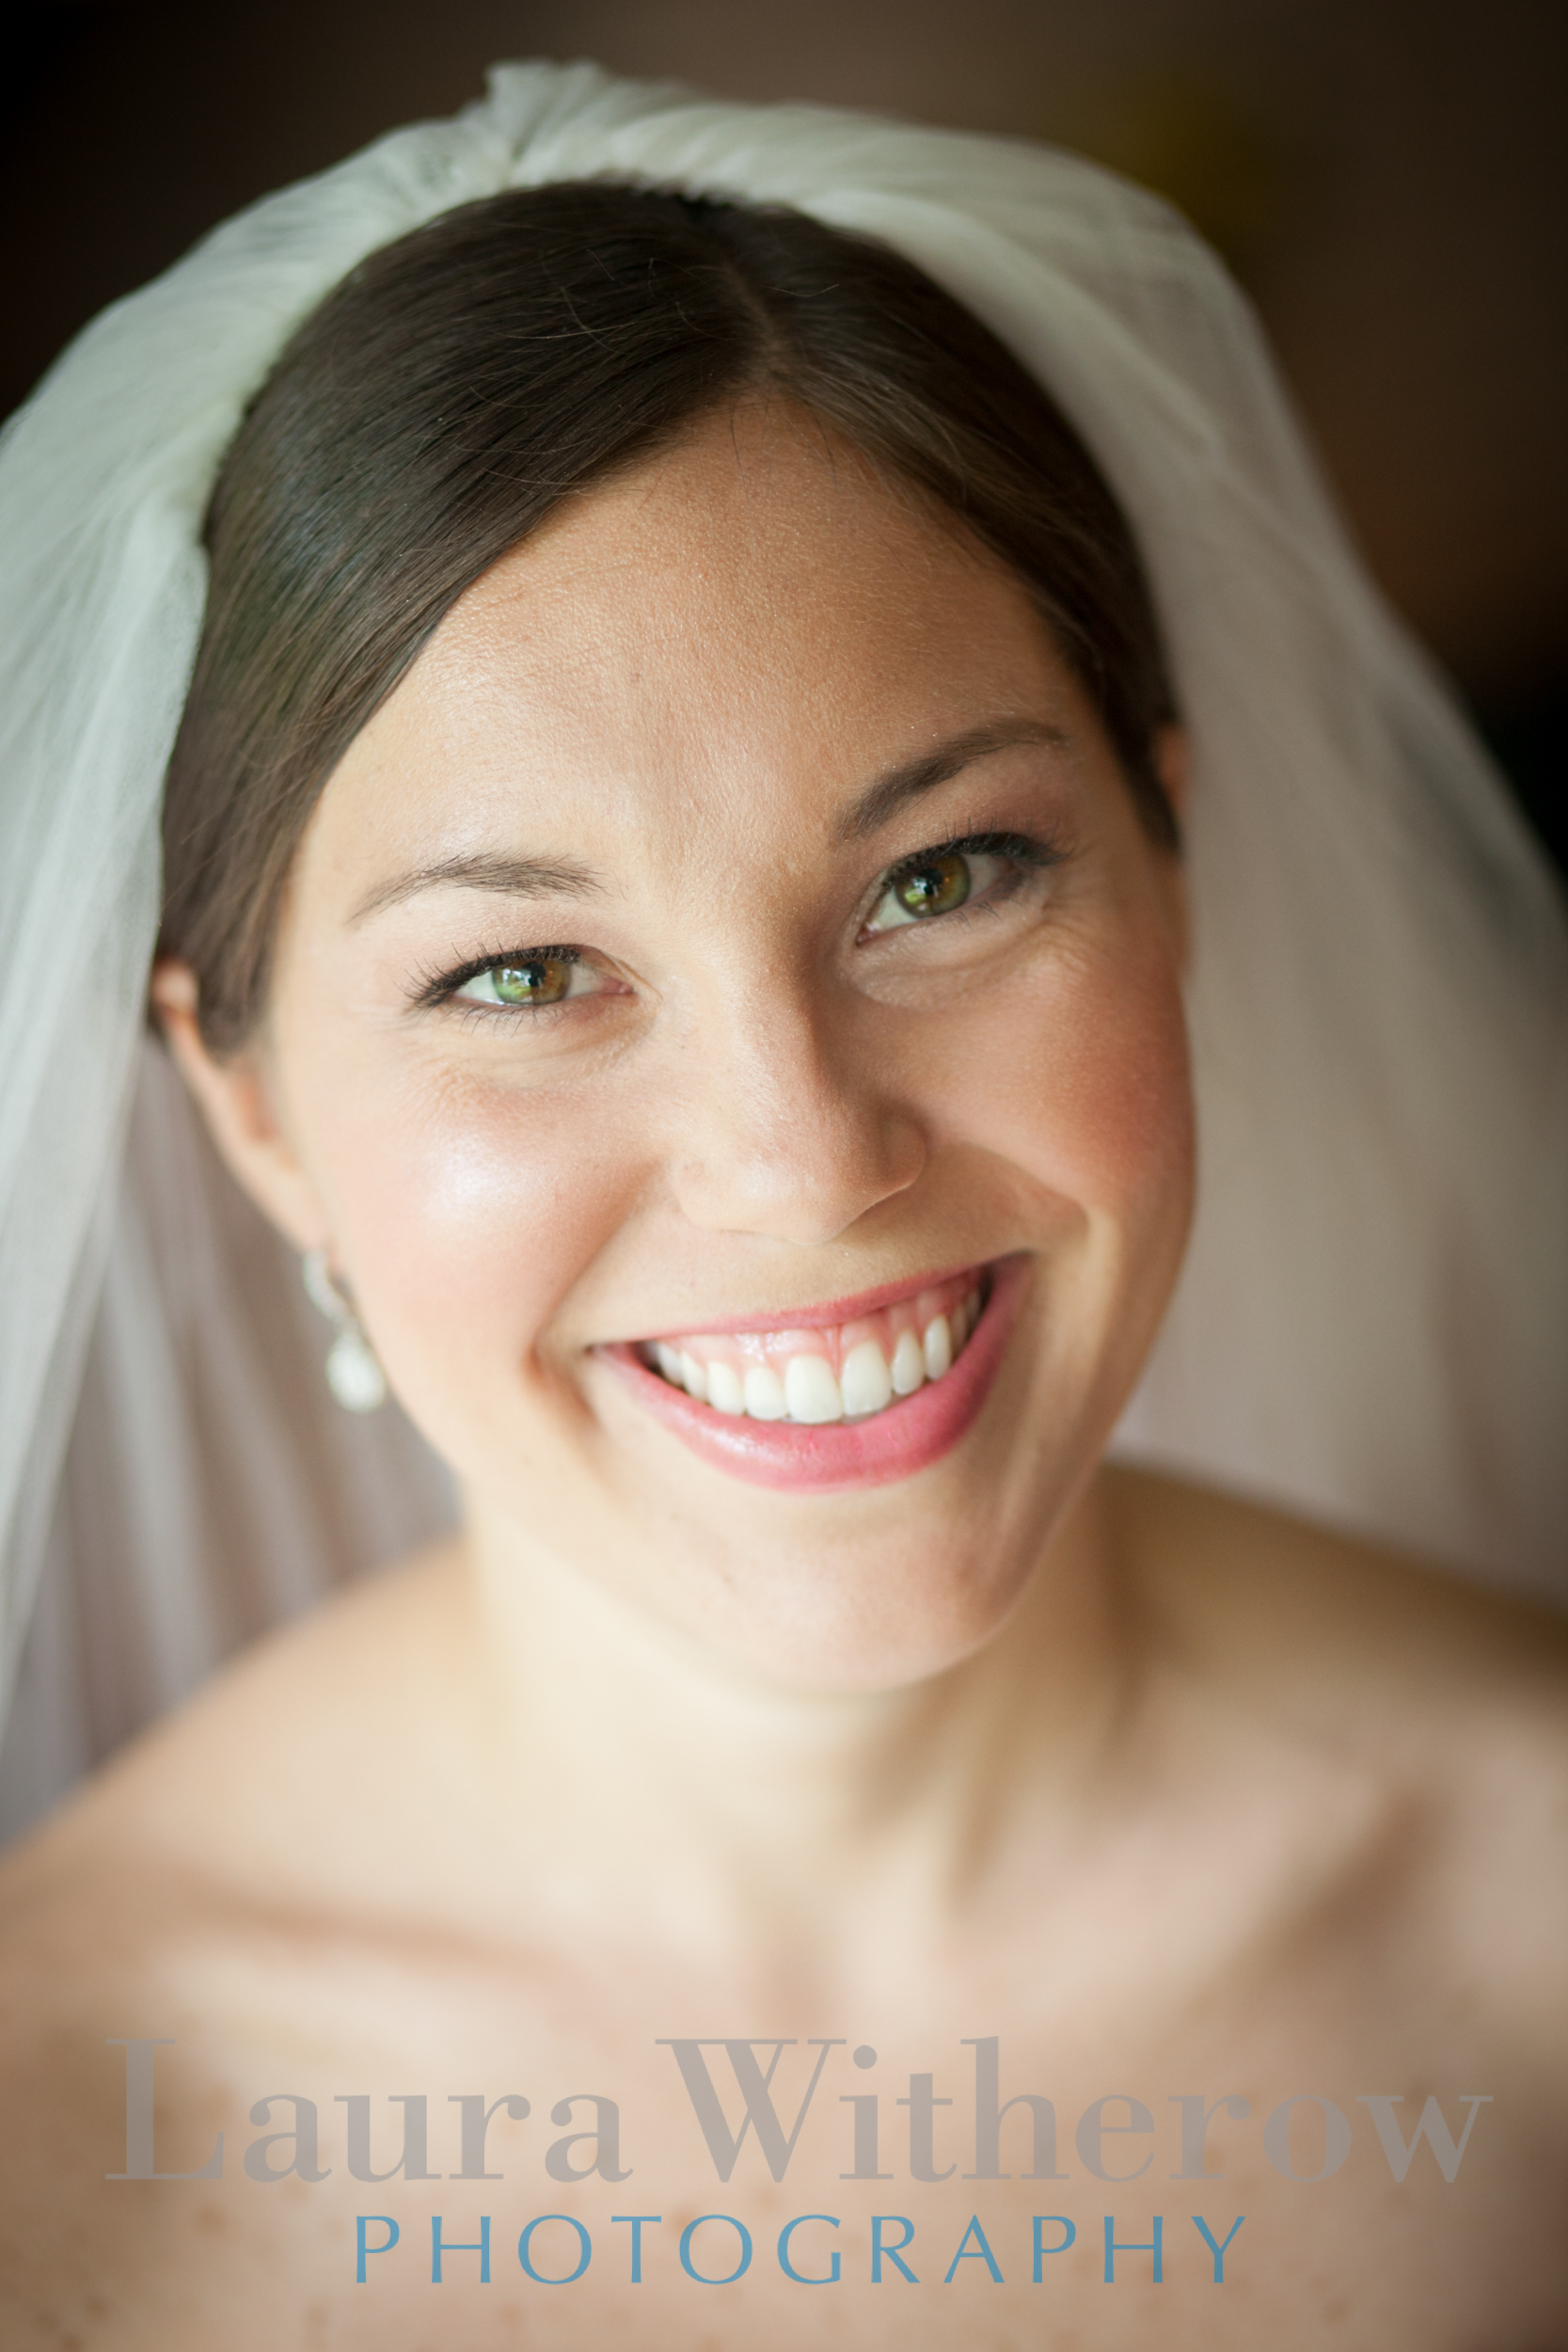 laura-witherow-chicago-wedding-photographer.jpg